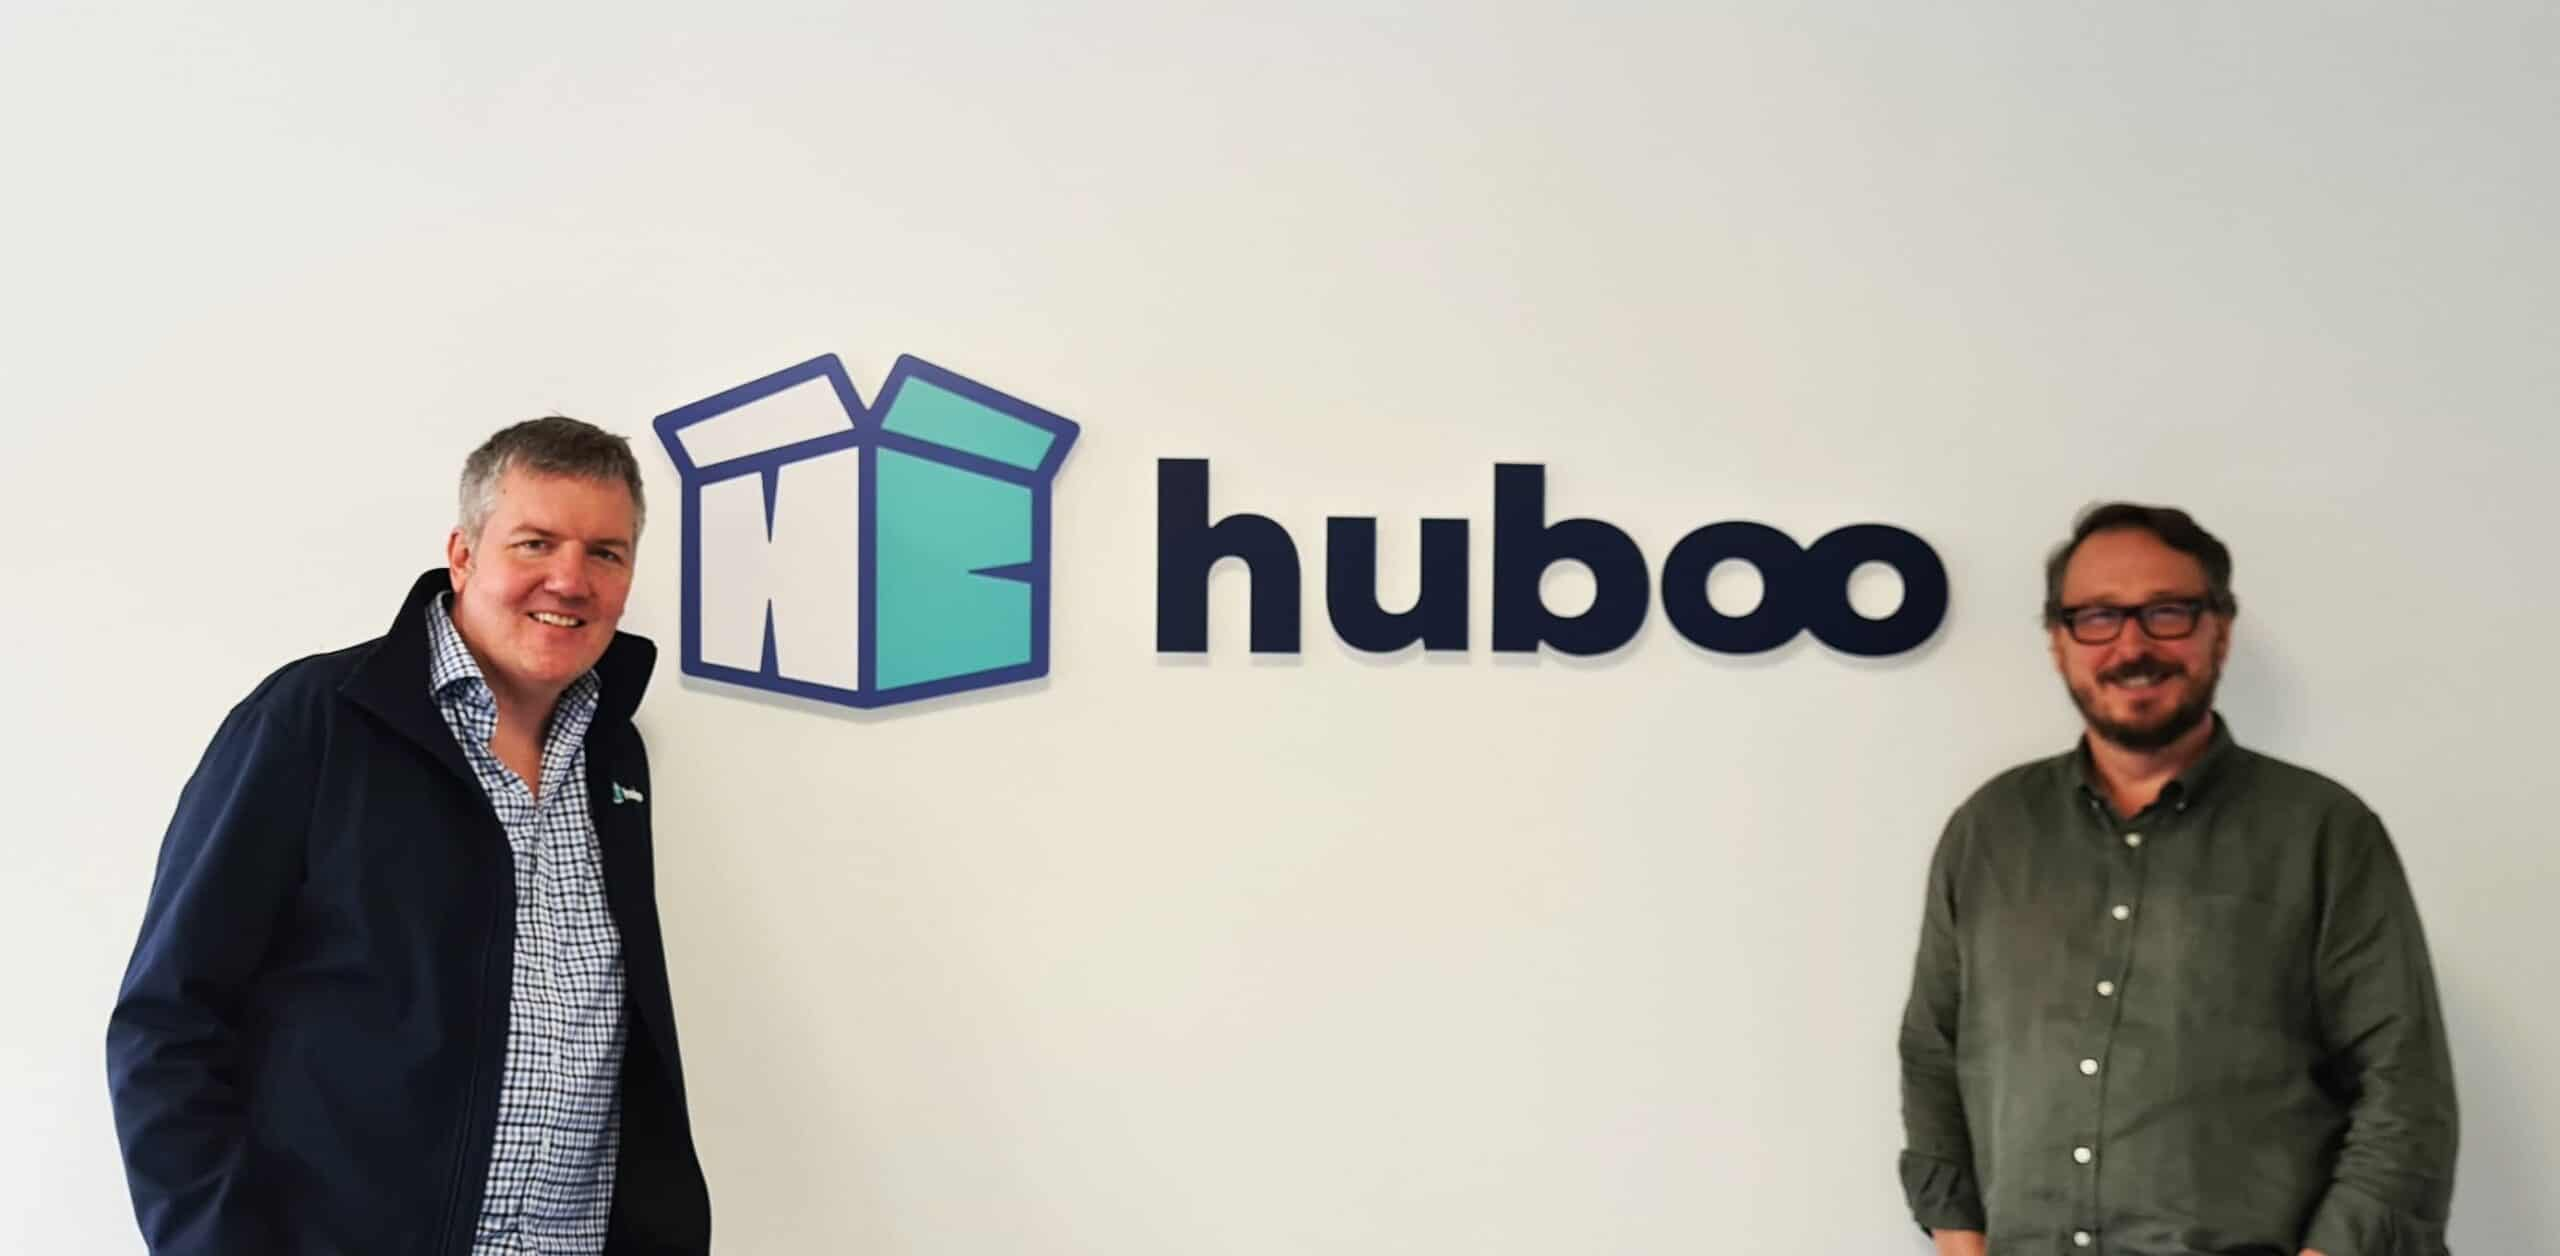 Huboo Technologies (t/a Huboo) secures £14 million Series A investment led by Stride